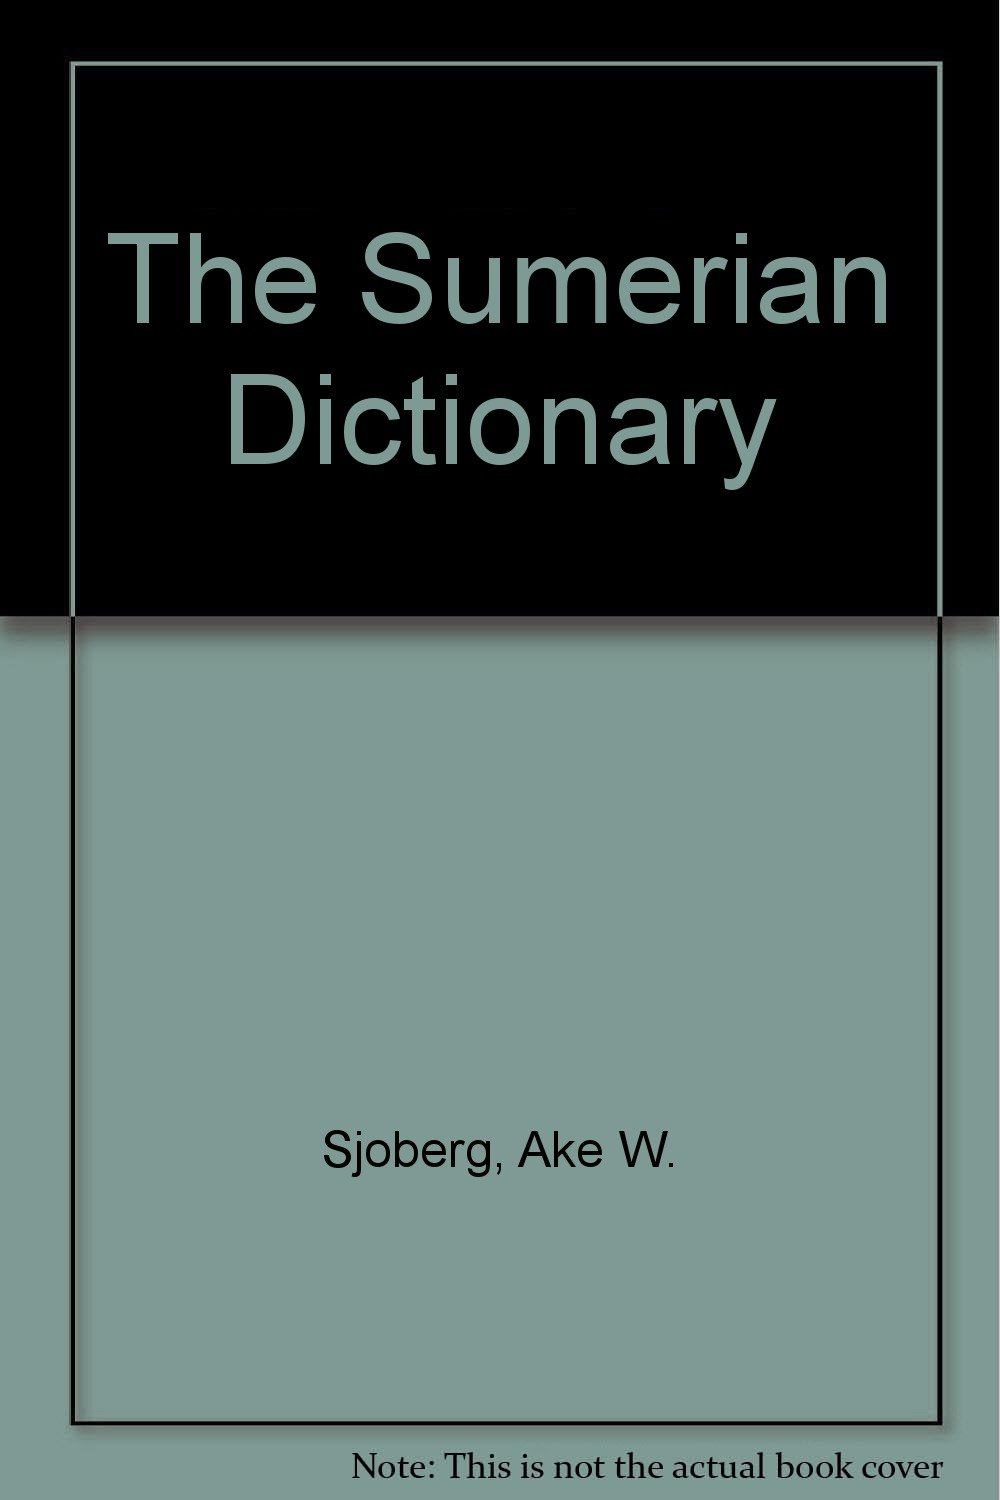 The Sumerian Dictionary (Volume A, Part II)